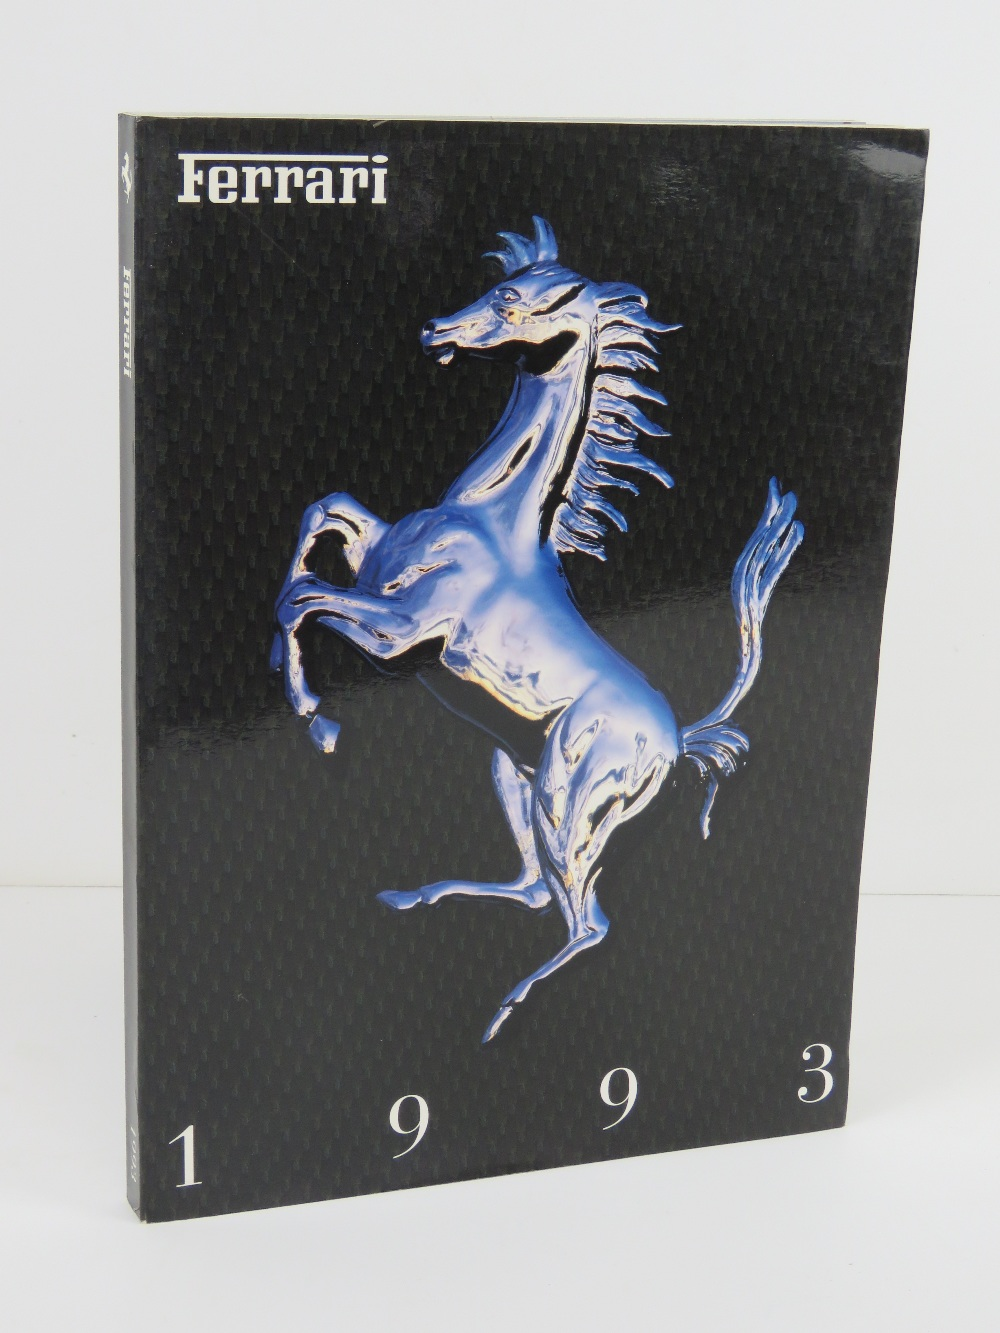 Ferrari Yearbook 1993. Italian edition. Softback book.